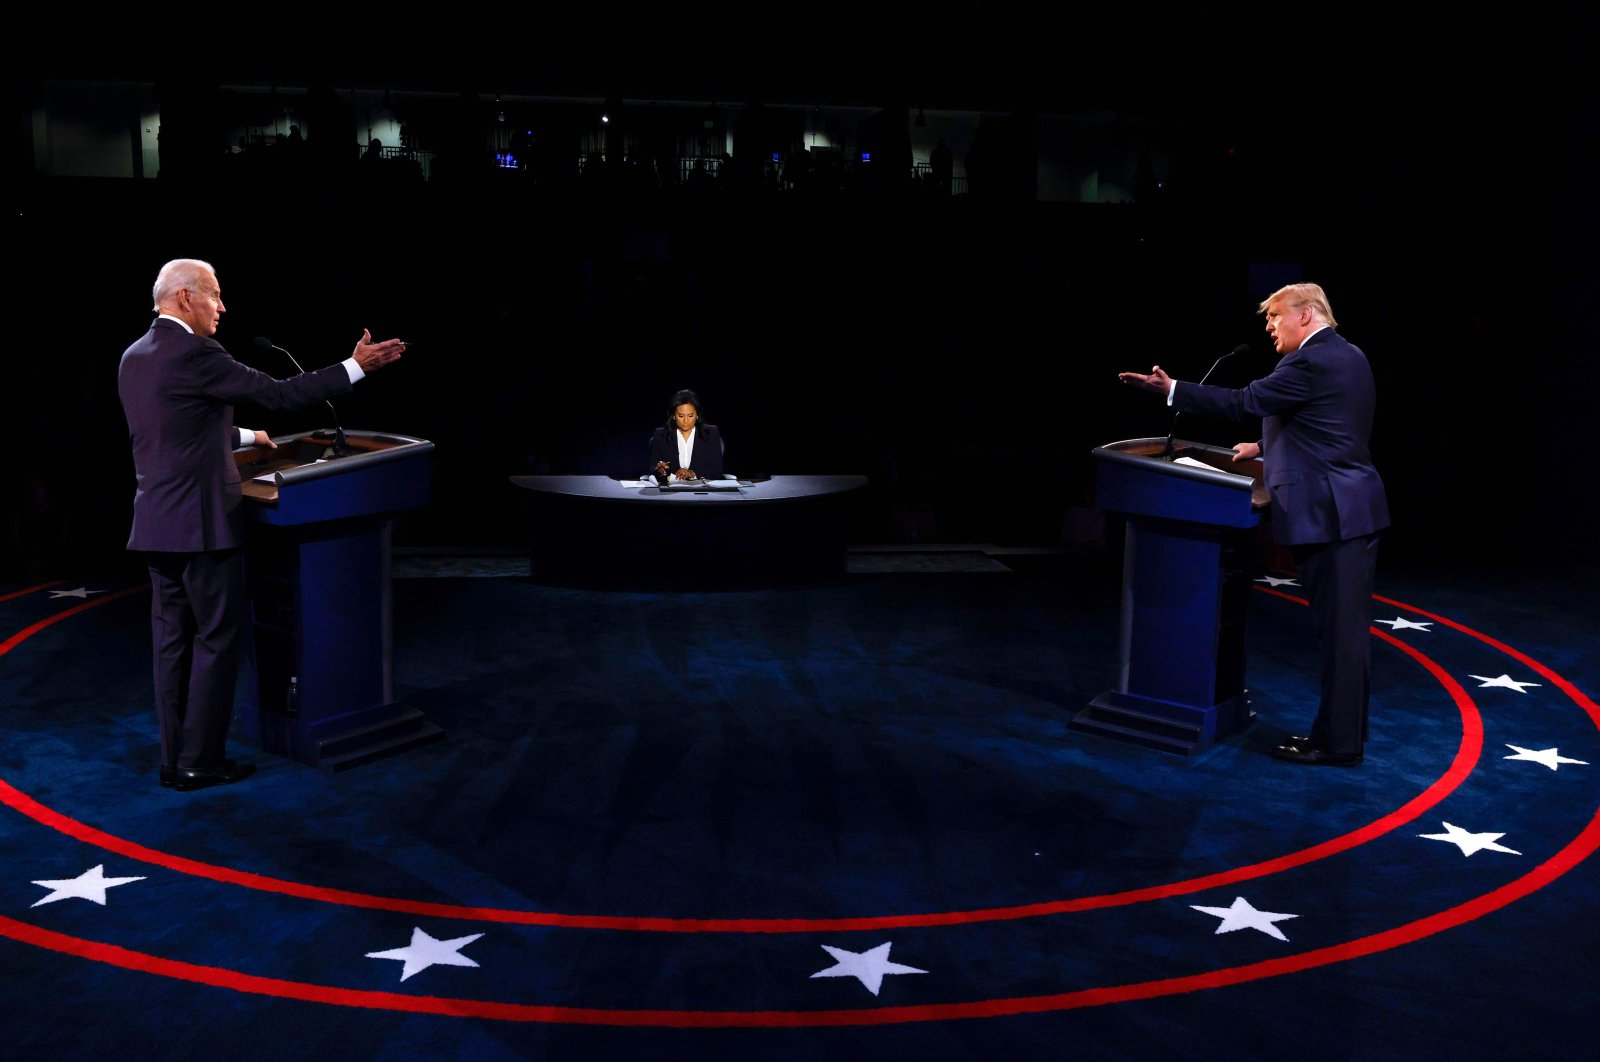 US President Donald Trump (R) Democratic Presidential candidate, former US Vice President Joe Biden and moderator, NBC News anchor, Kristen Welker (C) participate in the final presidential debate at Belmont University in Nashville, Tennessee, on October 22, 2020. (AFP Photo)